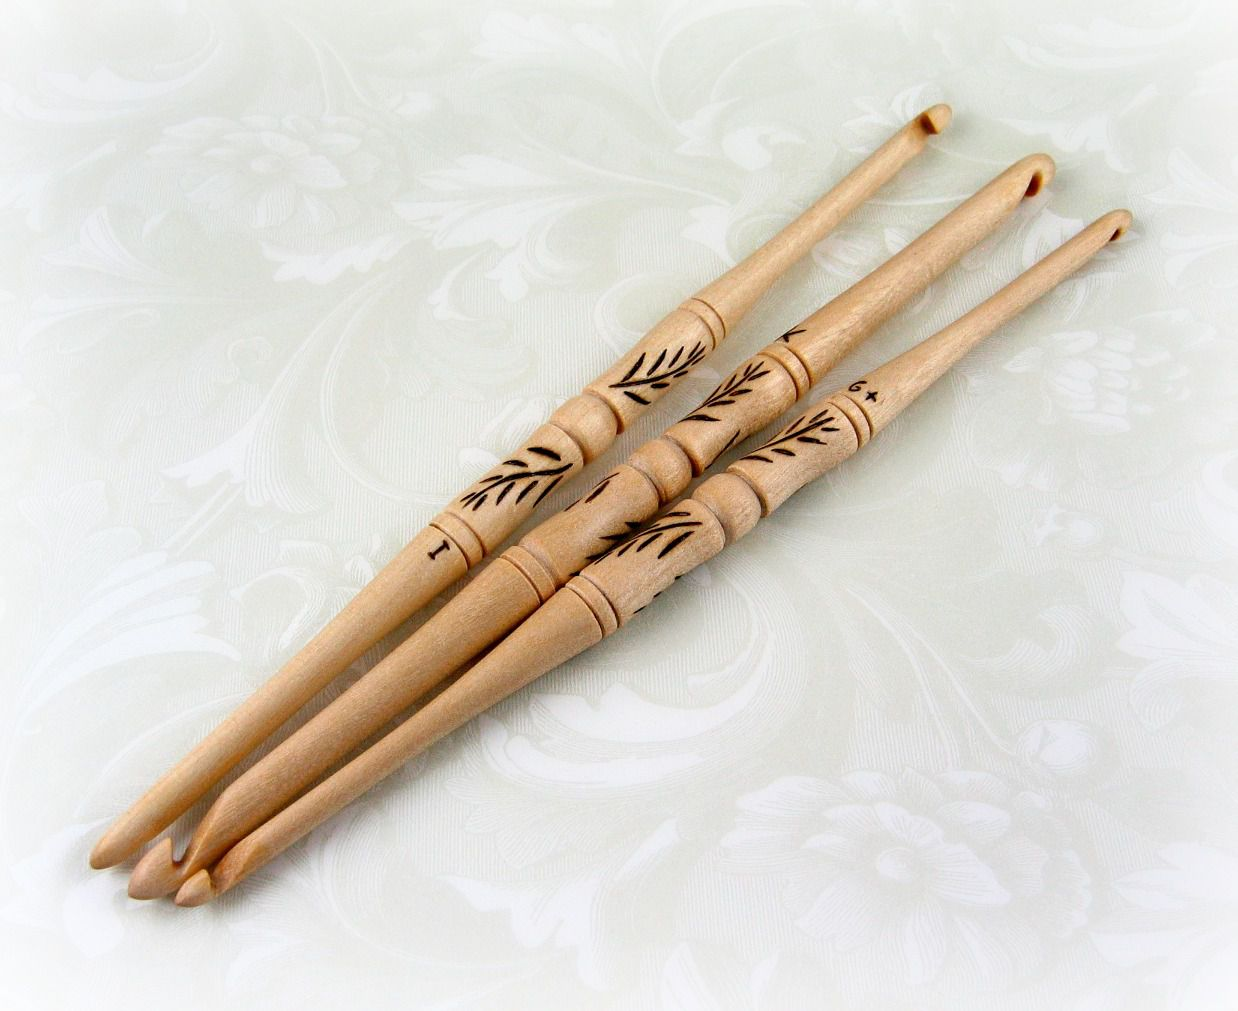 Double ended crochet needles